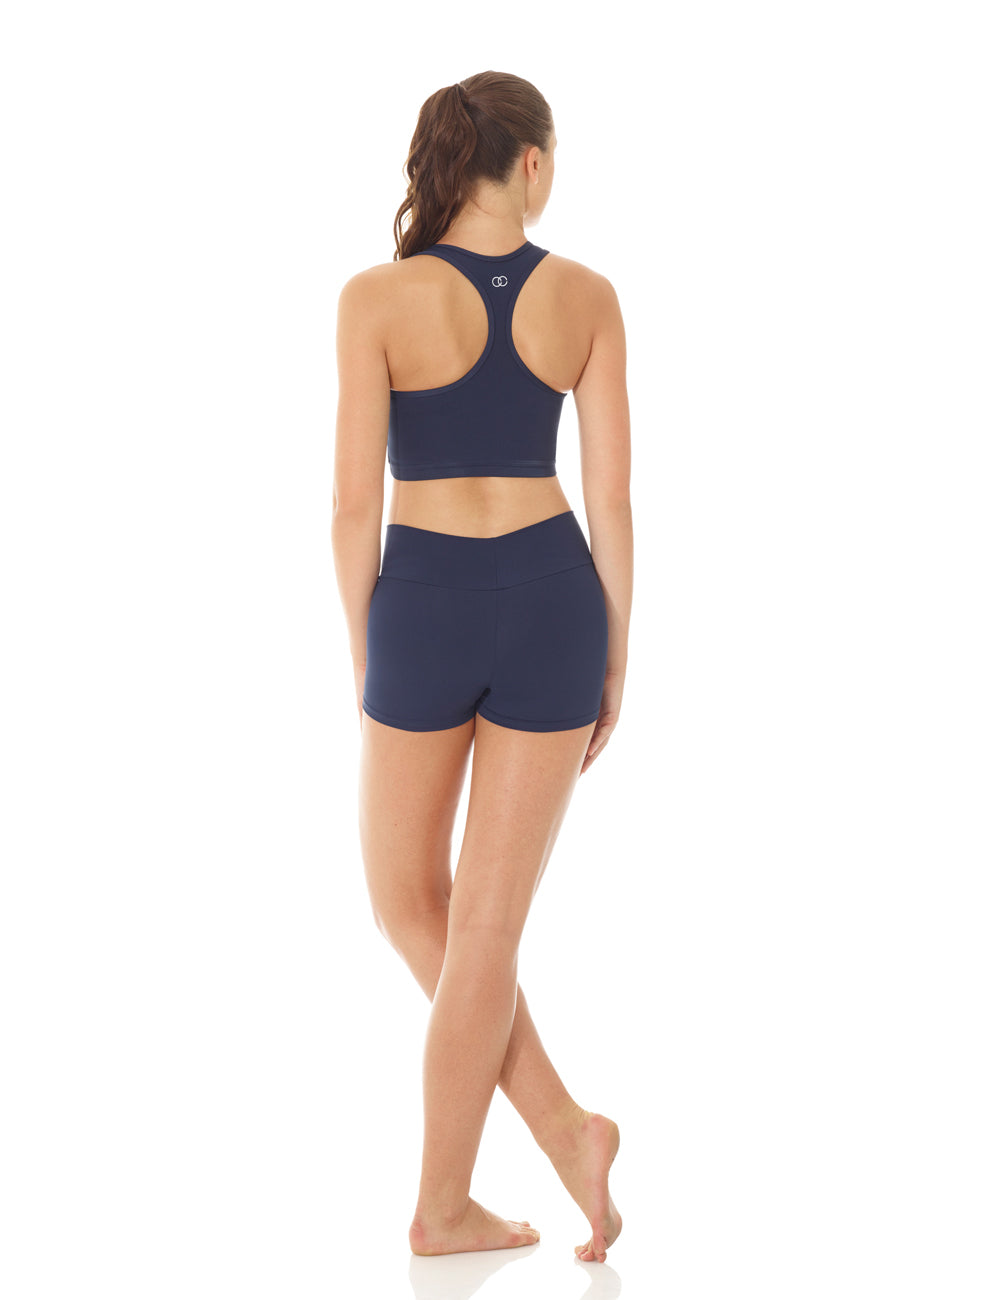 Ultra Support Racerback Bra - Navy